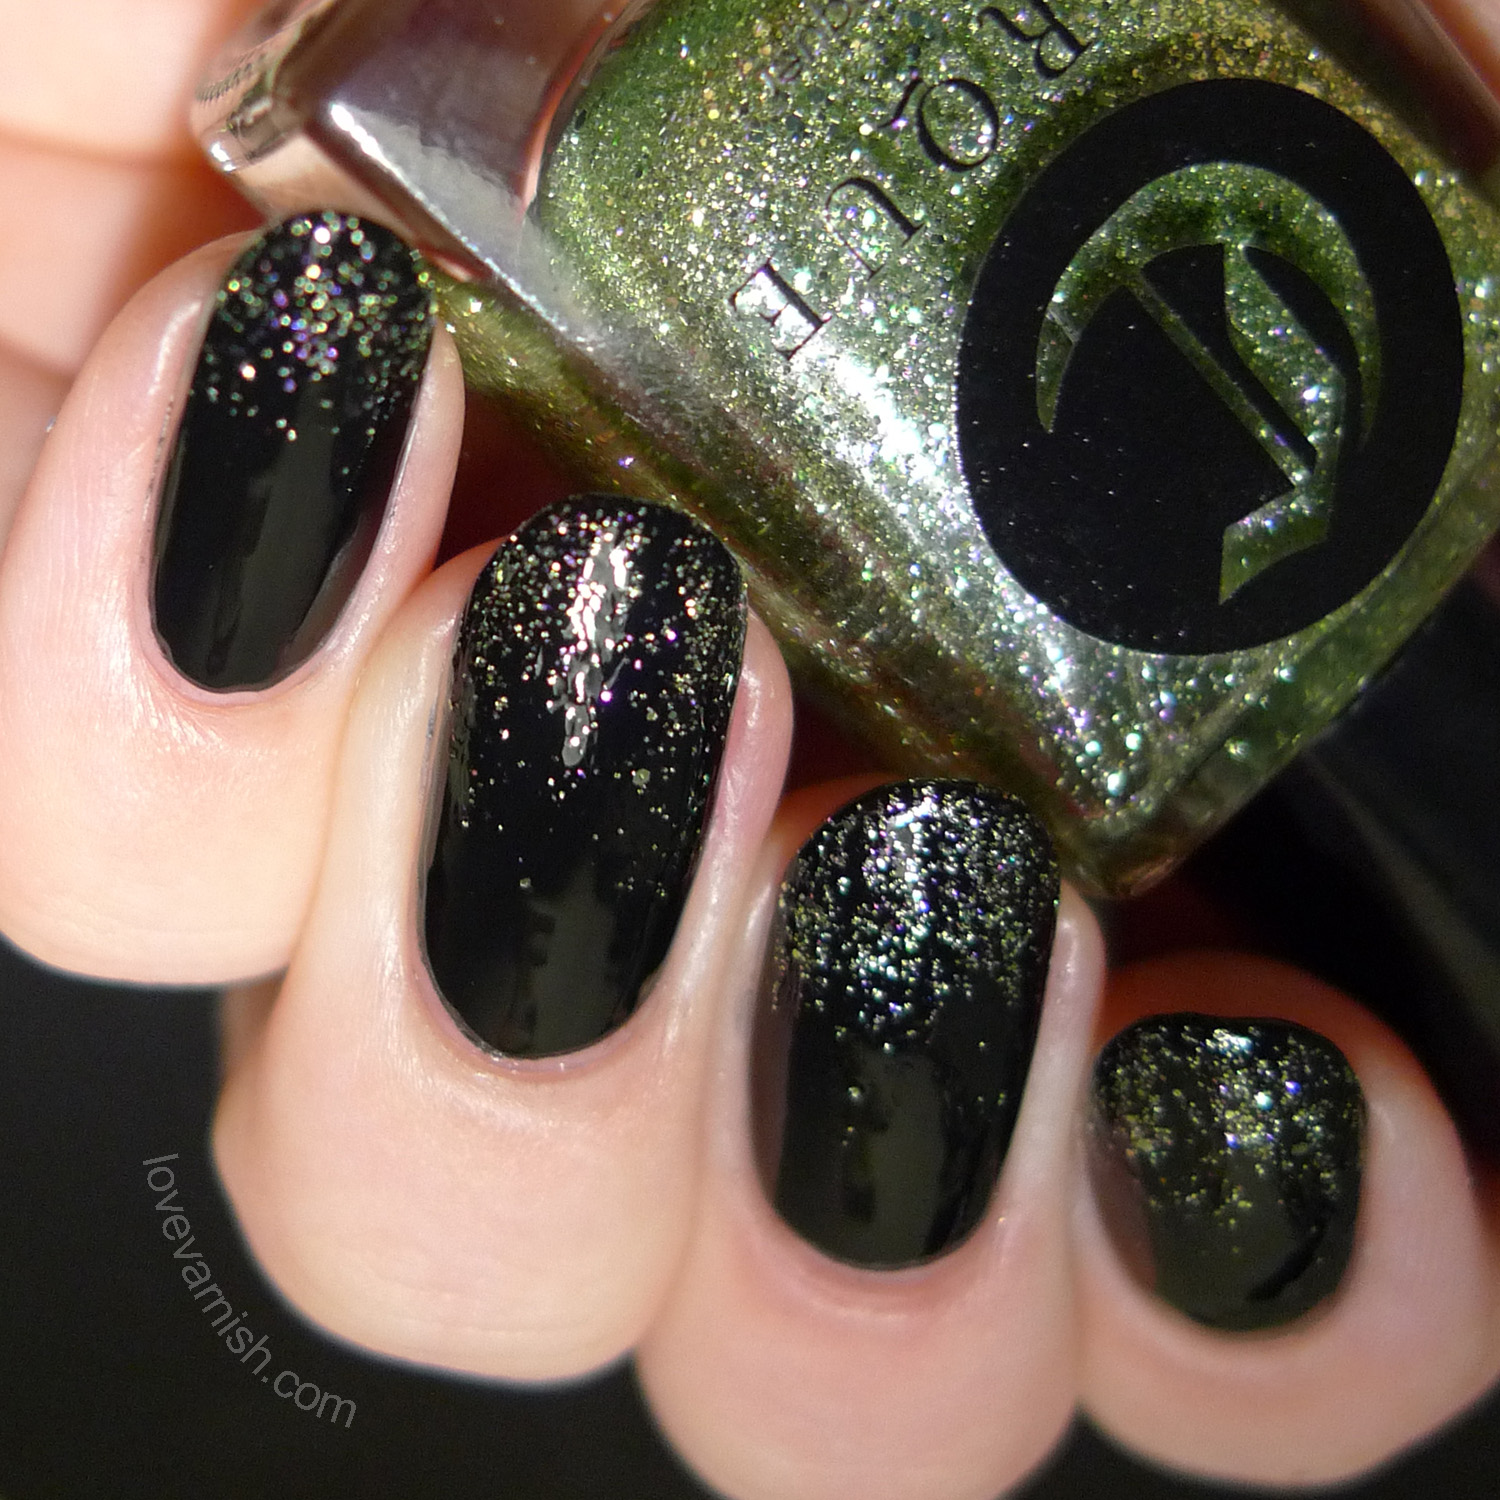 Cirque Back to Basics Memento Mori swatch